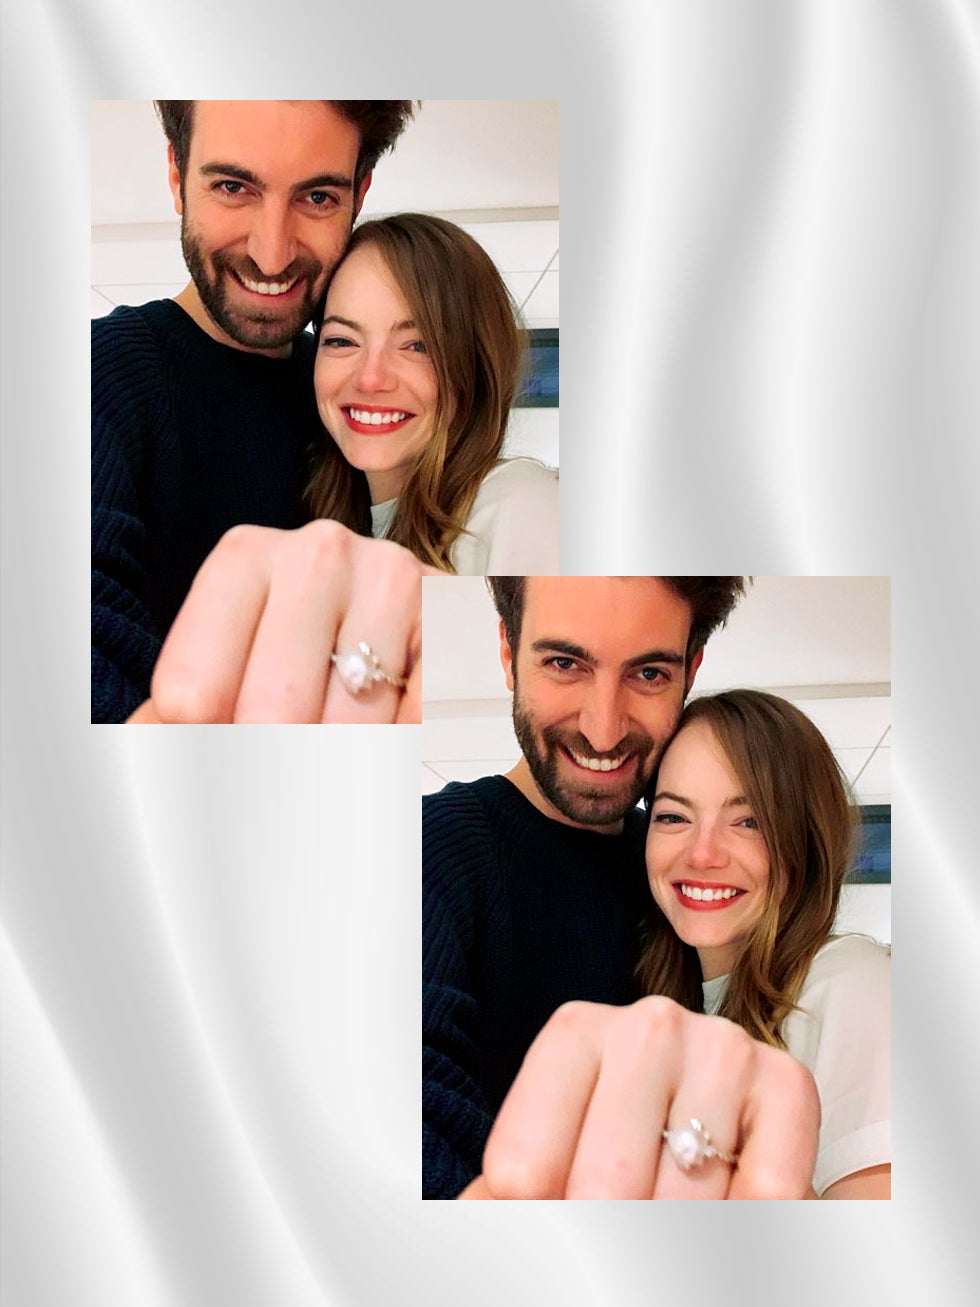 Emma Stone's Engagement Ring Suggests This Nontraditional Style Is on the Rise